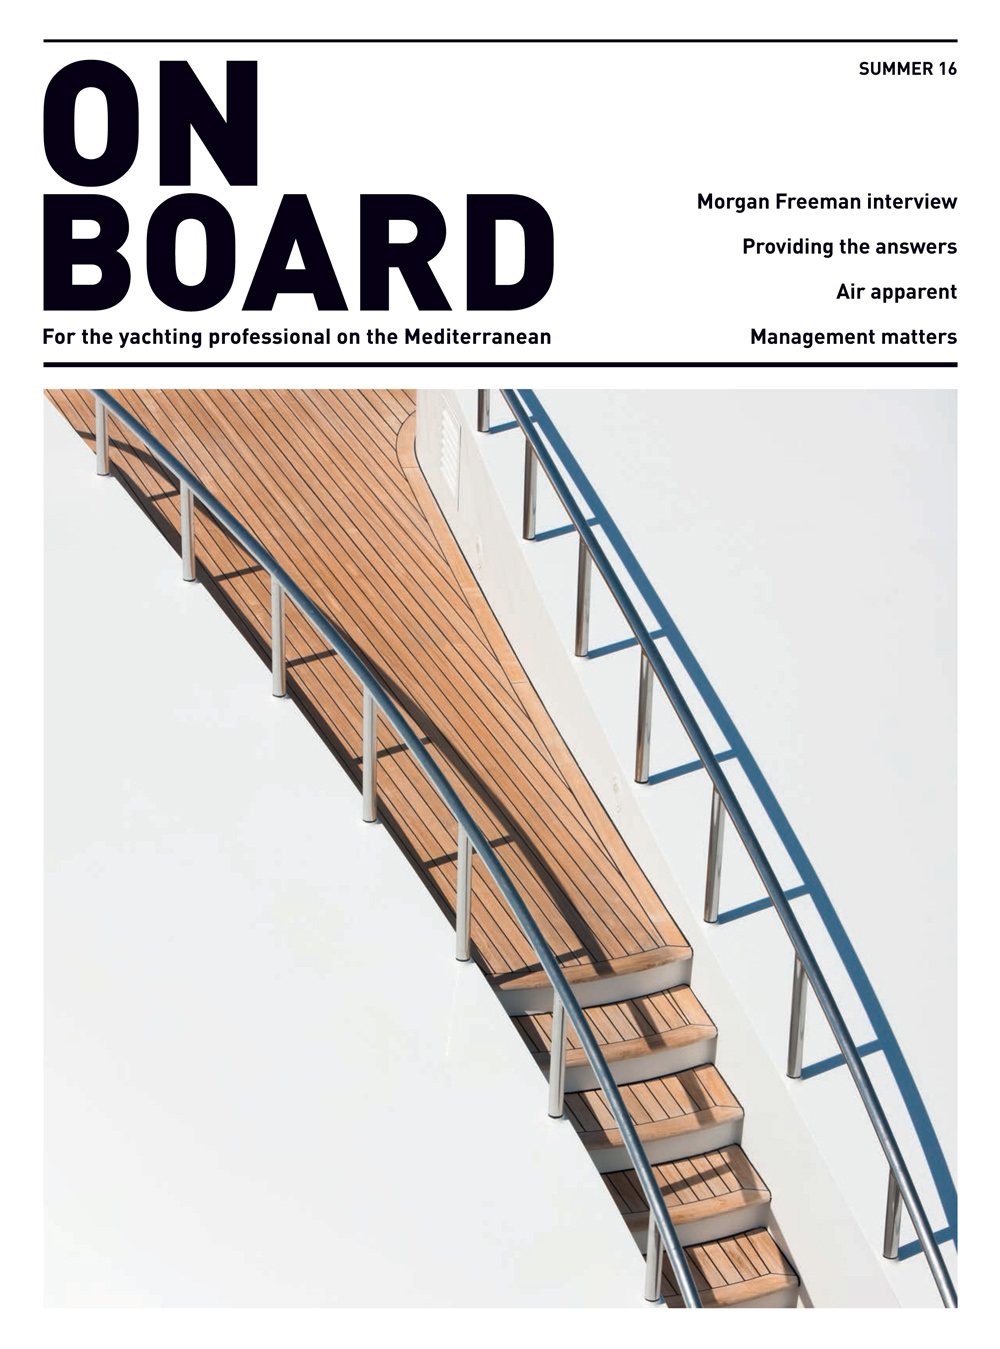 ONBOARD-Magazine-Summer-16-front-cover.jpg